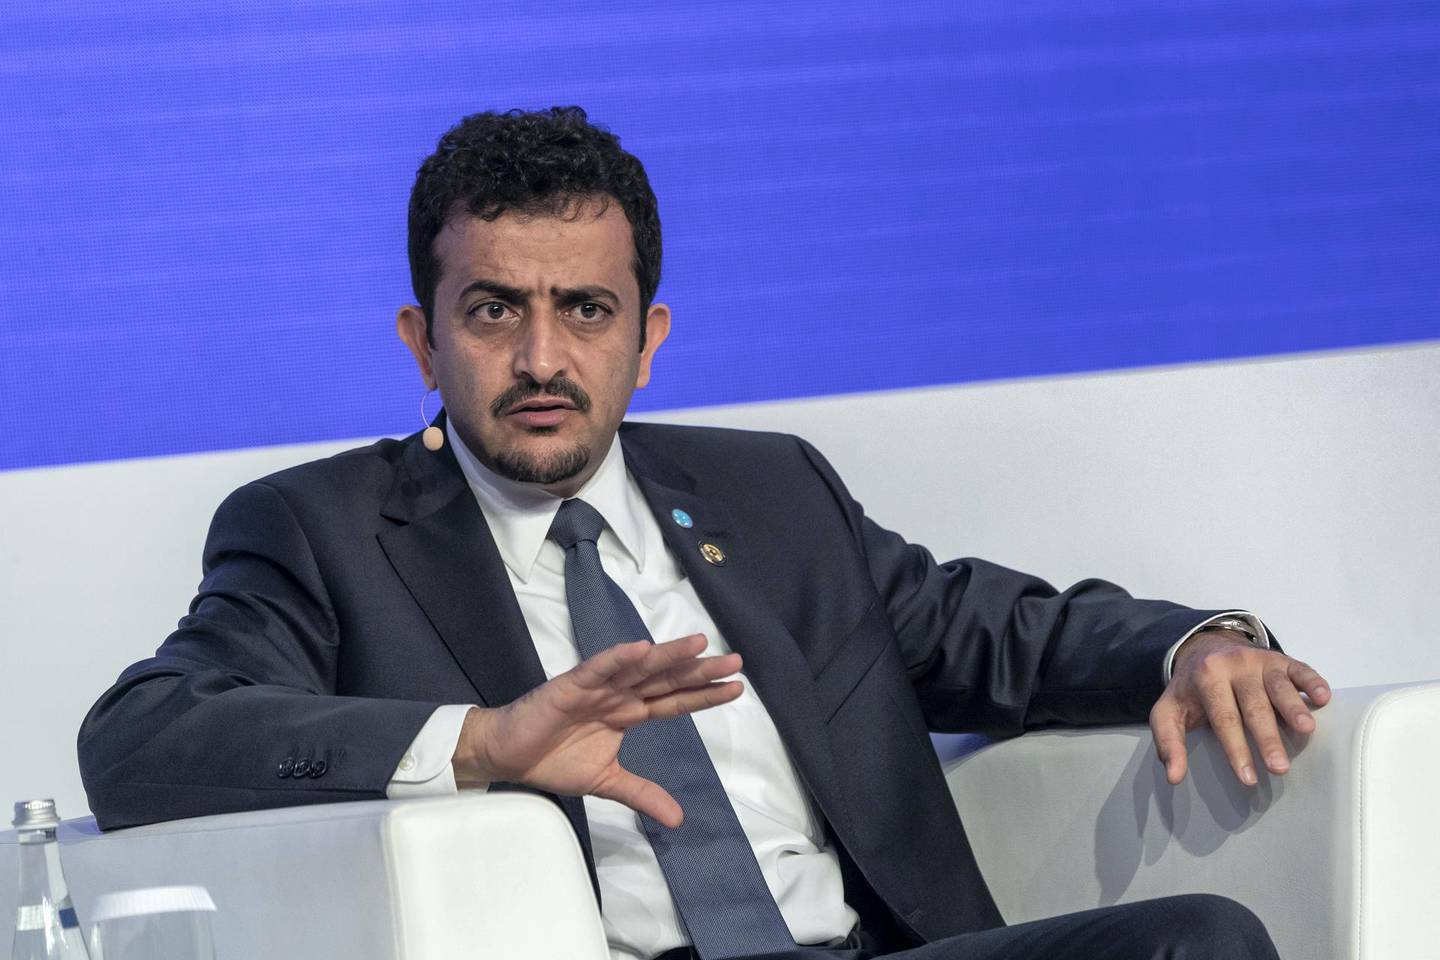 ABU DHABI, UNITED ARAB EMIRATES. 13 November 2019. The third day of ADIPEC at ADNOC. Opec's 2019 World Oil Outlook  Ayed Al Qahtani, Research Division Director, Opec. (Photo: Antonie Robertson/The National) Journalist: None. Section: National.